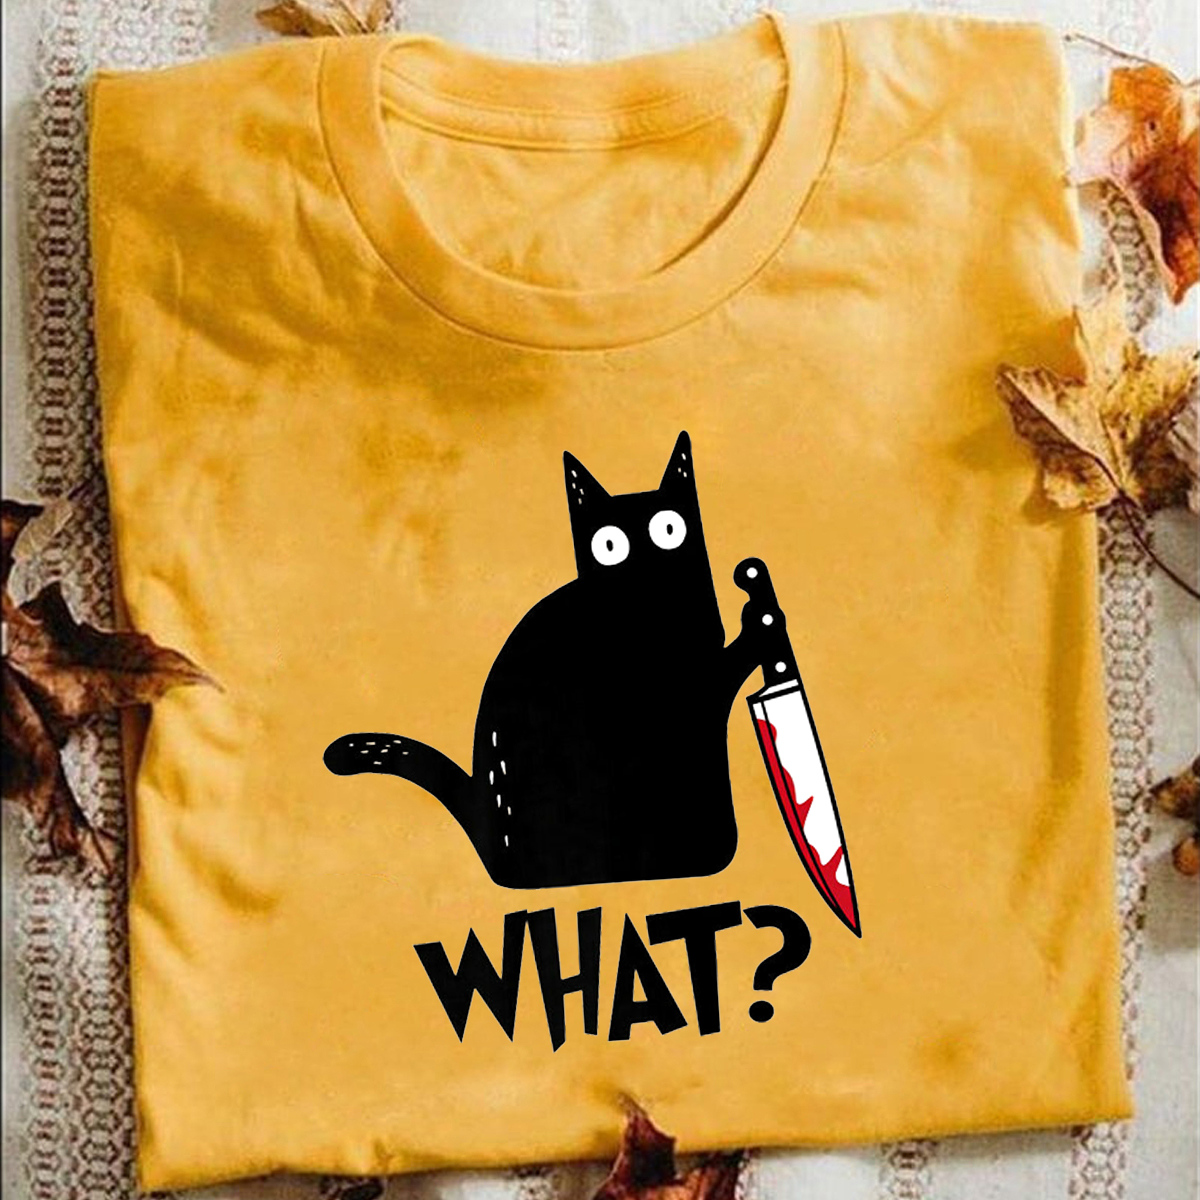 Cat What T Shirt Murderous Cat With Knife Funny Halloween Gift T Shirt Unisex High Quality Cotton T-shirts Halloween Present